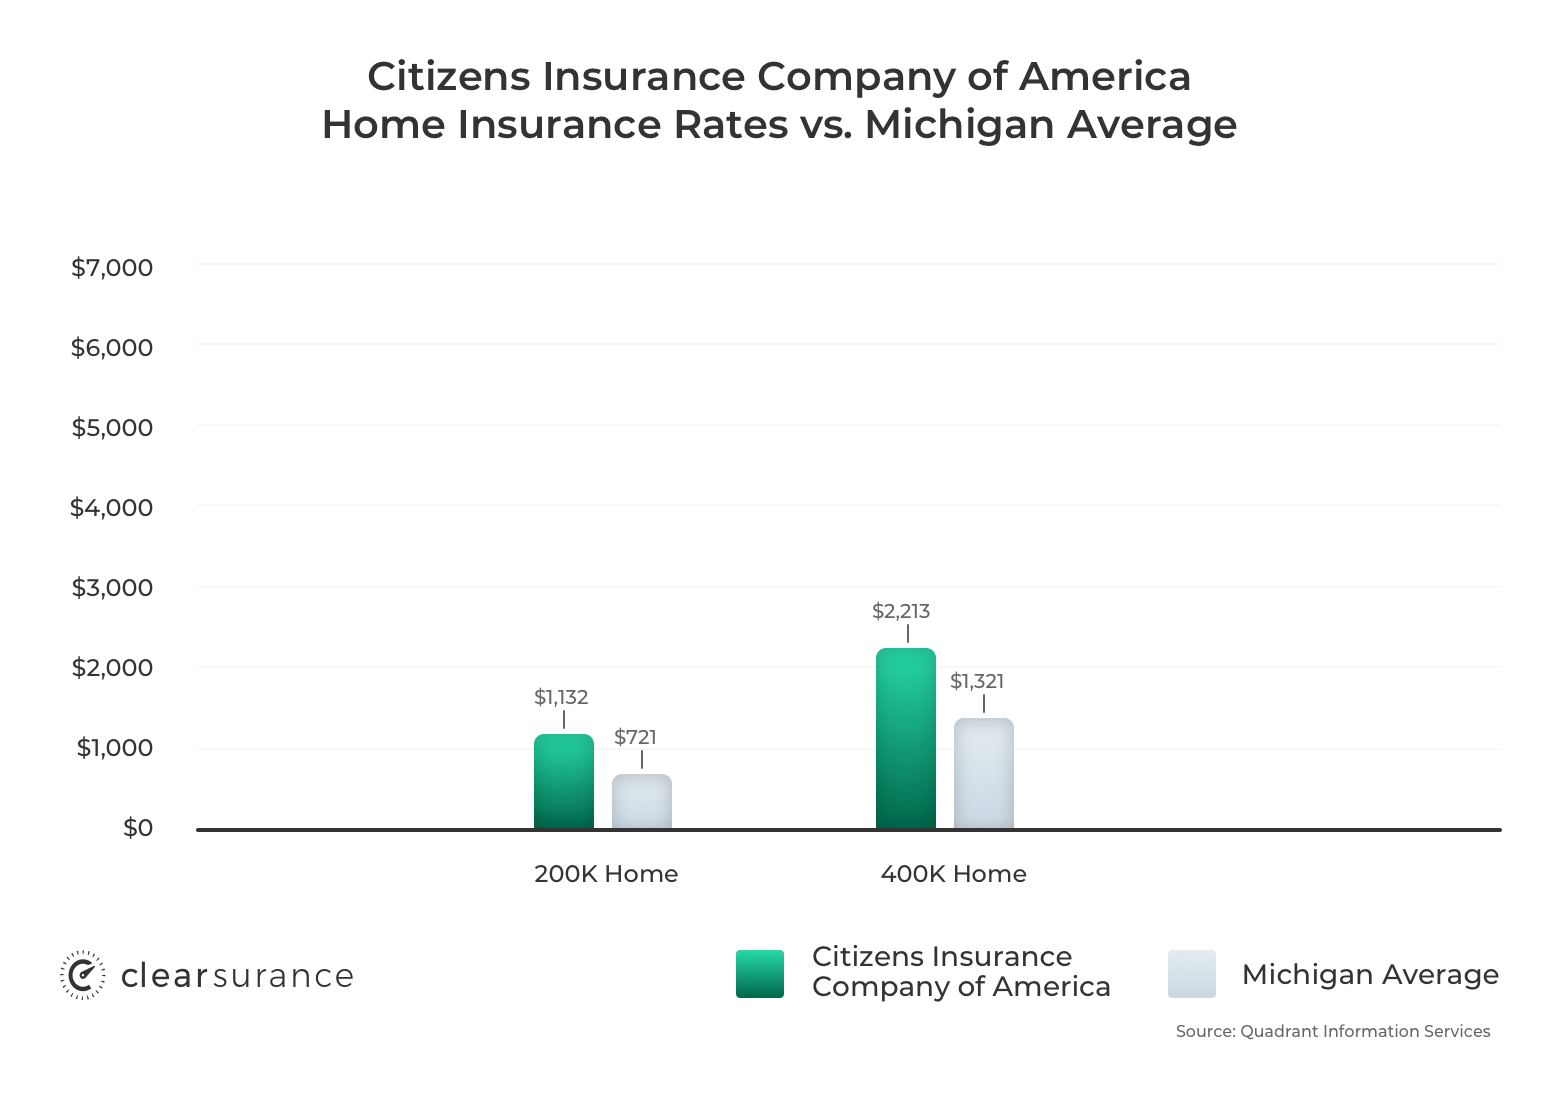 Citizens Insurance Company of America home insurance rates